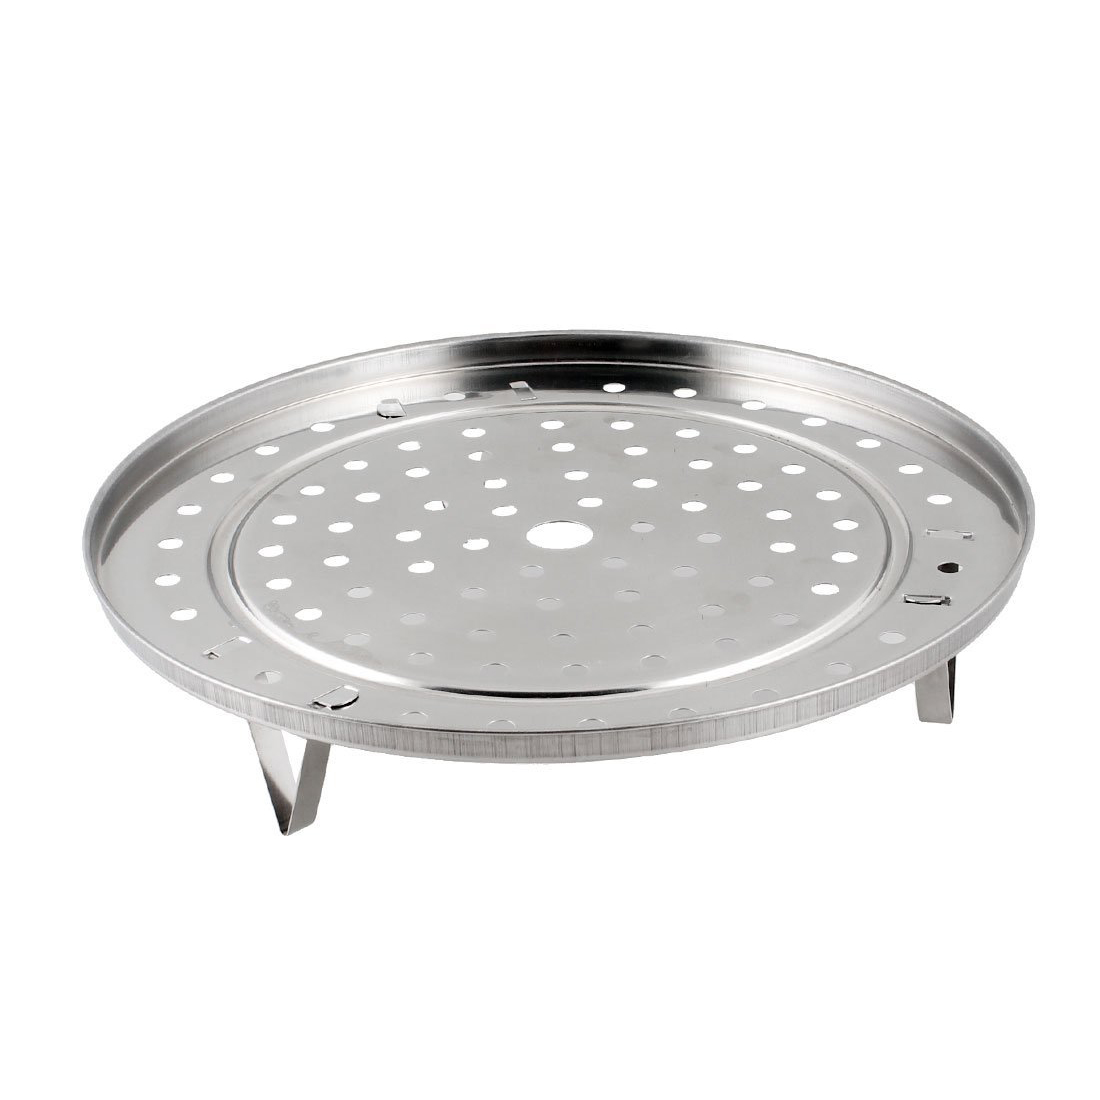 Round Stainless Steel Steaming Rack W Stand 25.5cm Diameter